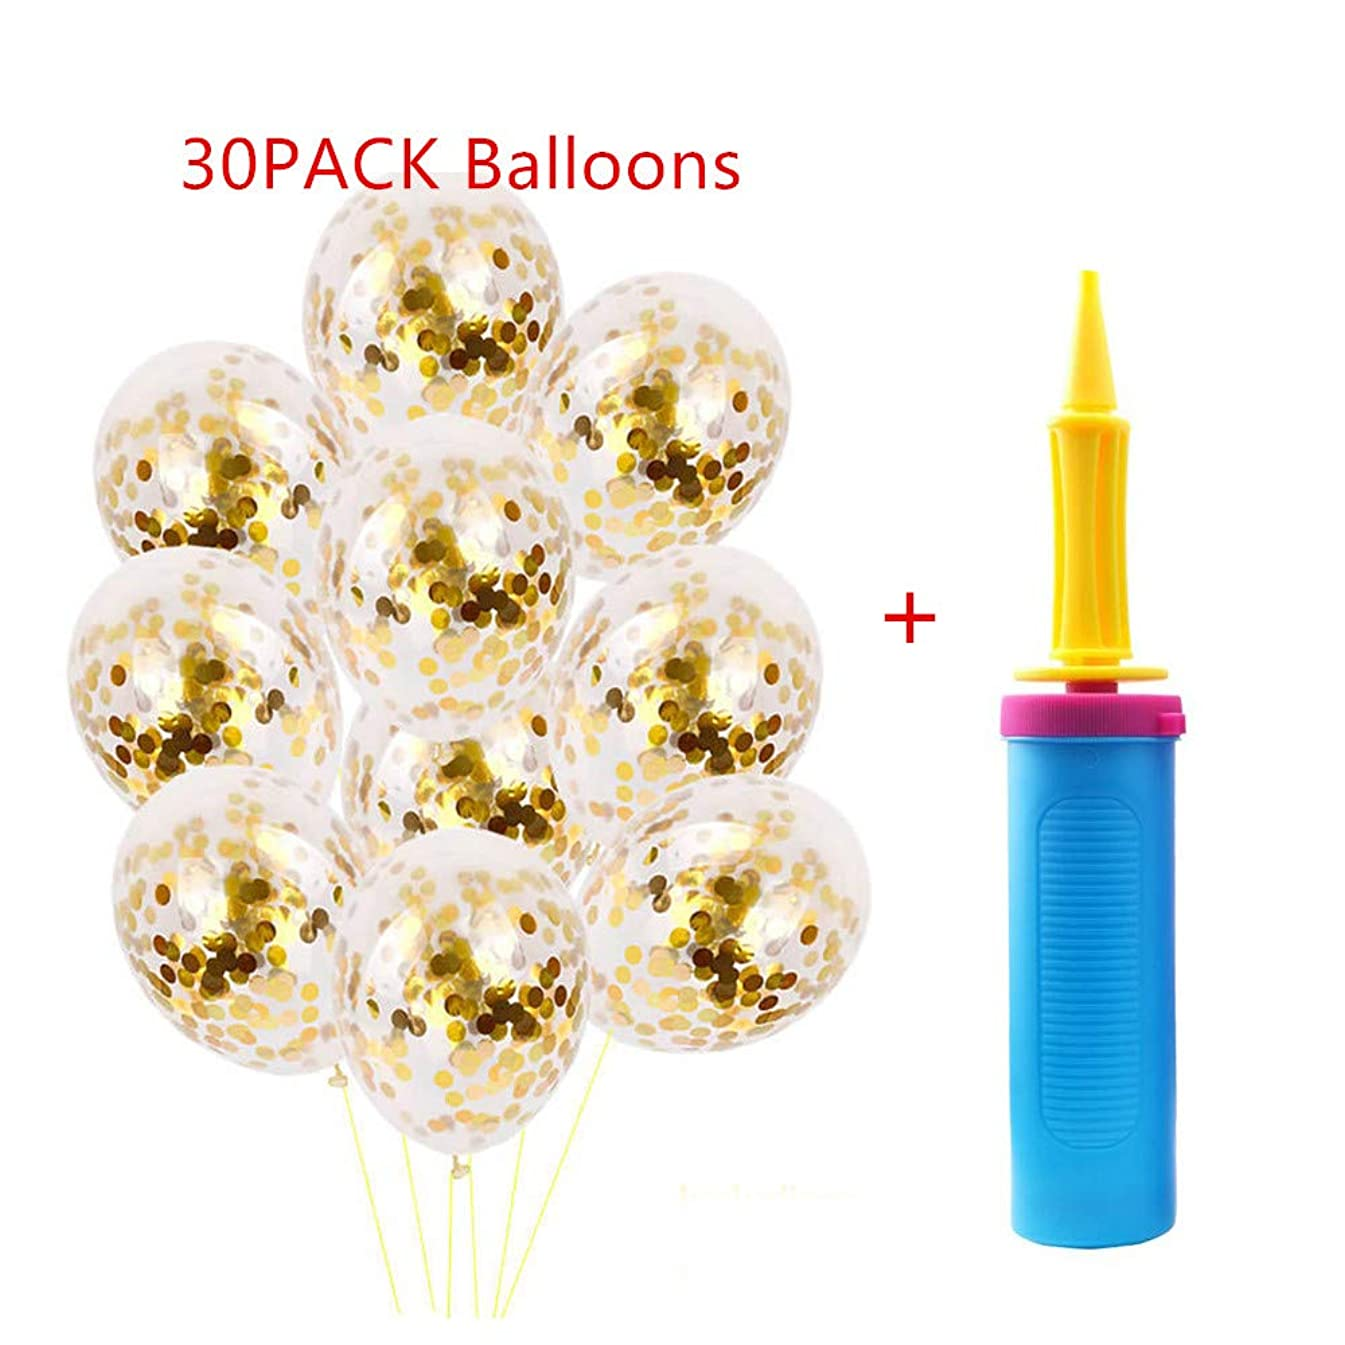 Mary Paxton 30 Pack Gold Confetti Balloons+Pump Set,Graduation Party Supplies Latex Glitter Balloons Kit Golden Paper Dots Birthday Decorations Proposal Wedding 10